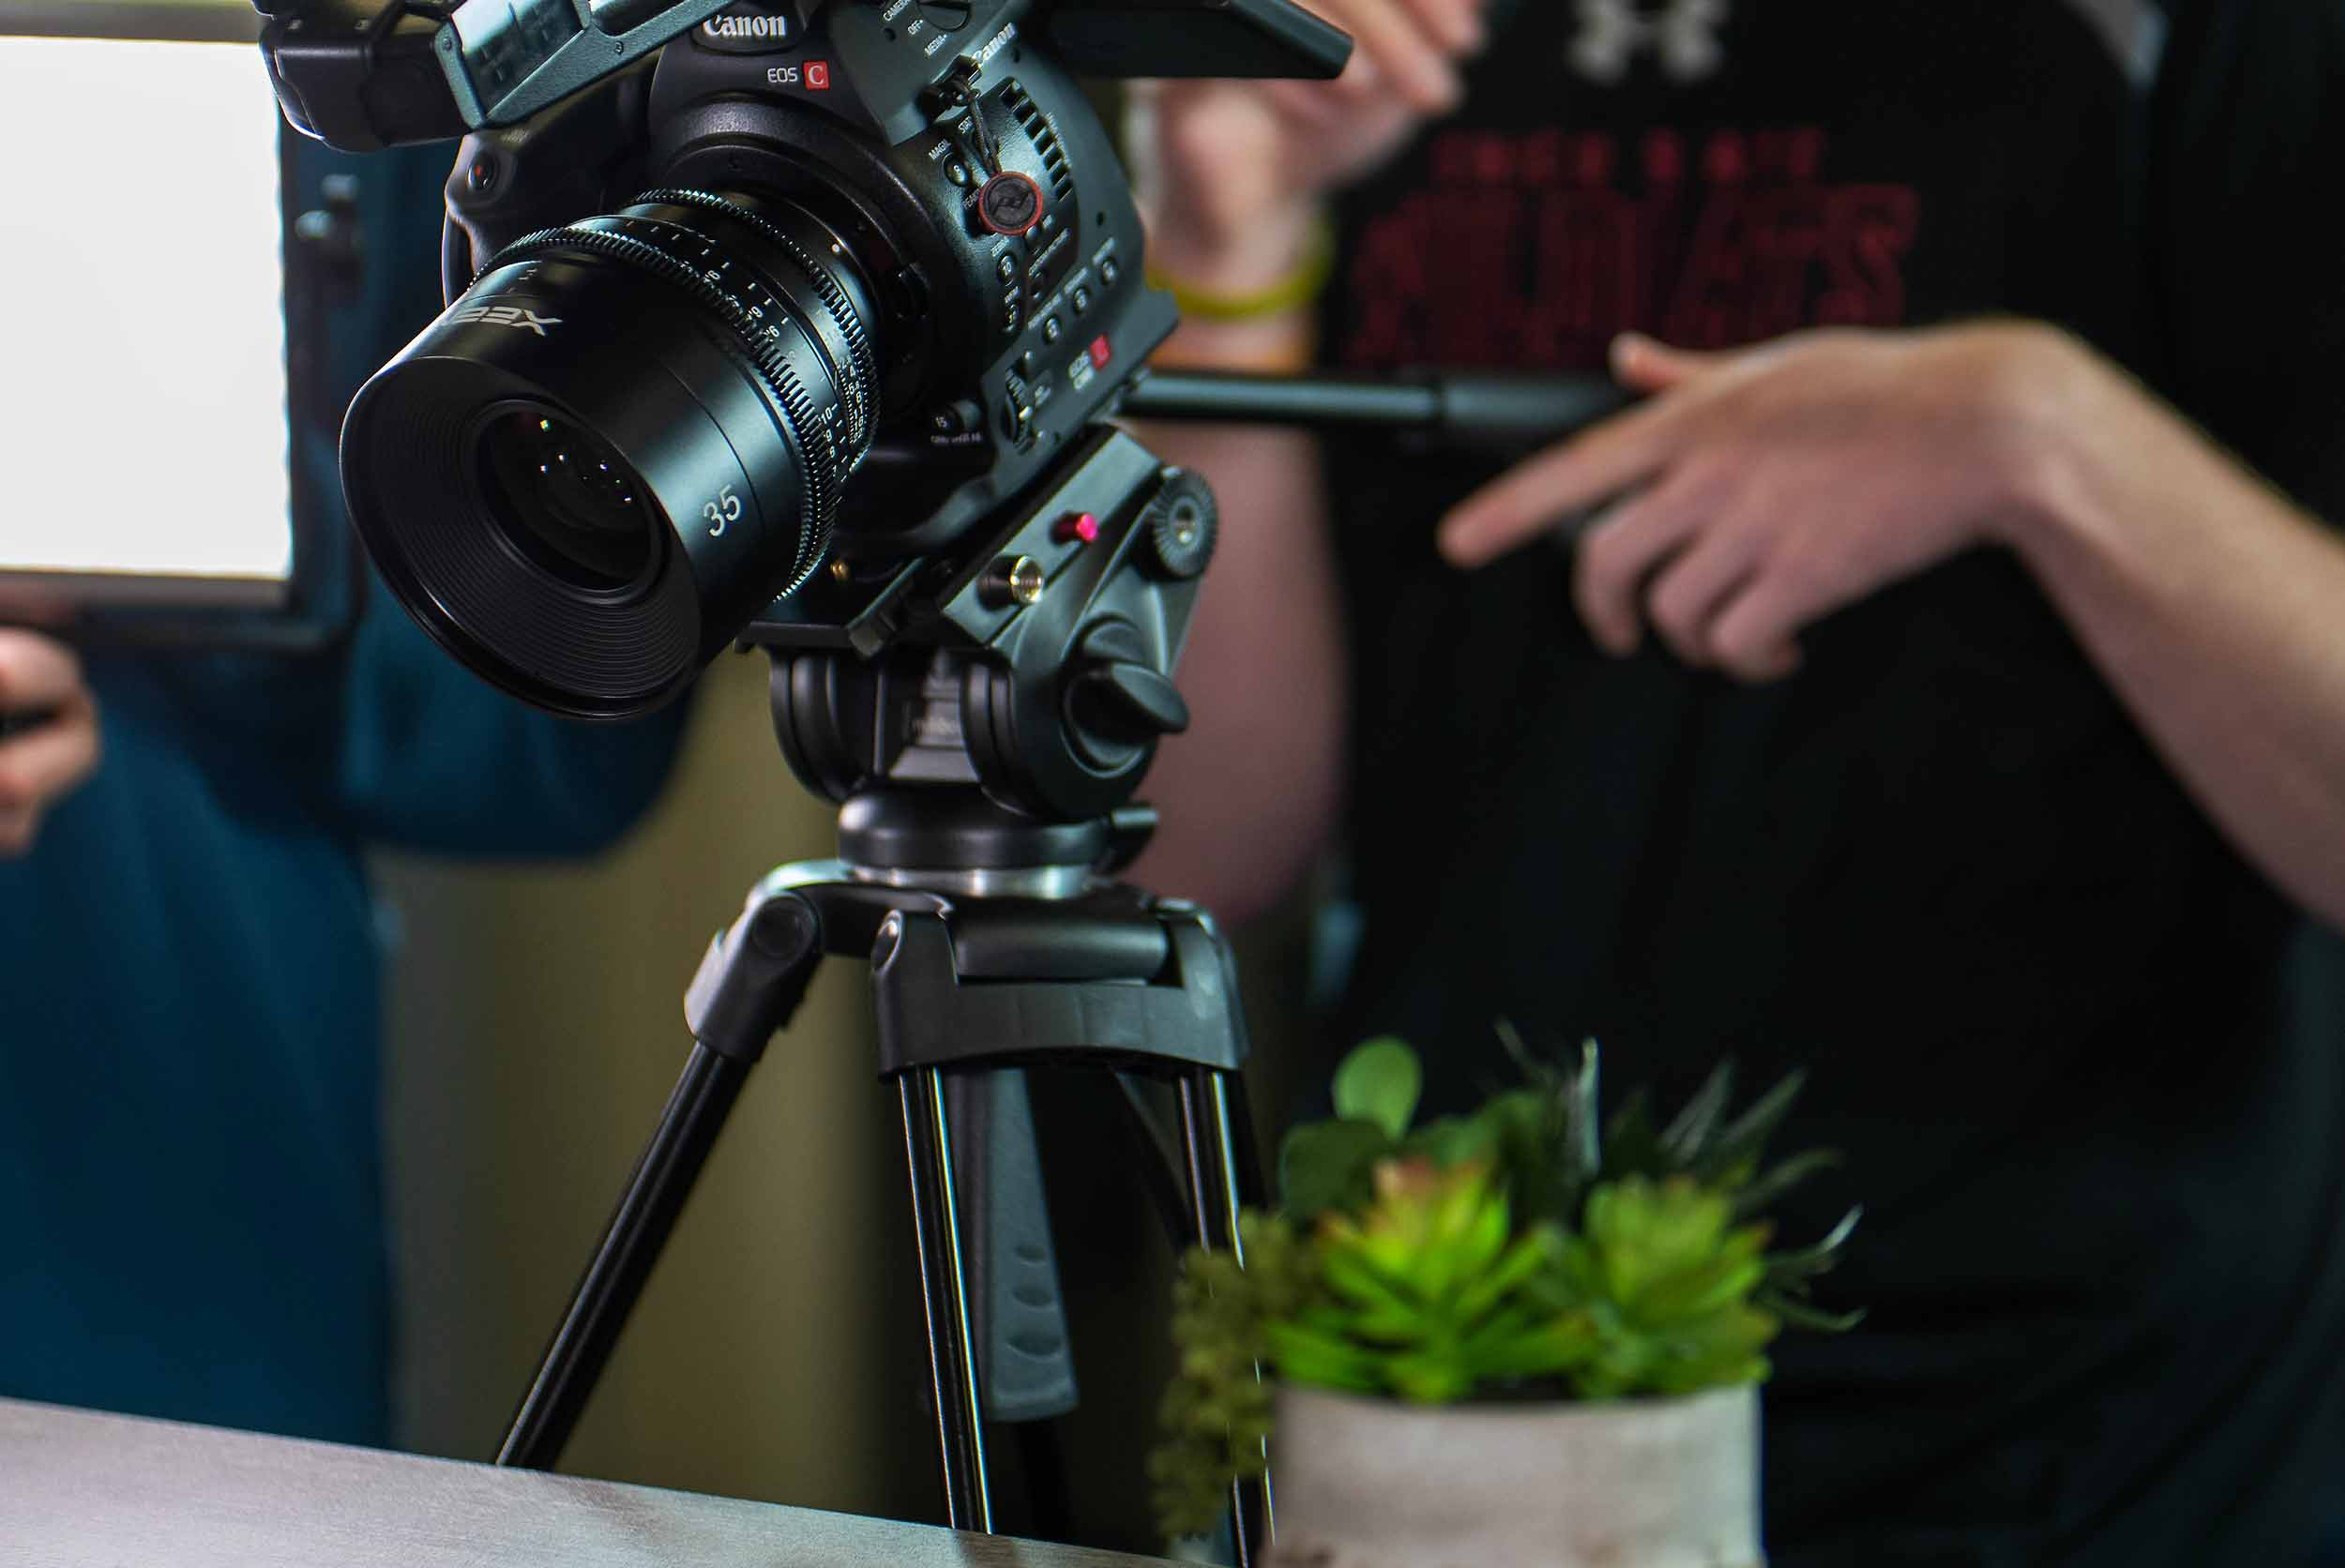 About Results Imagery, a Product Photography & Product Videography Company